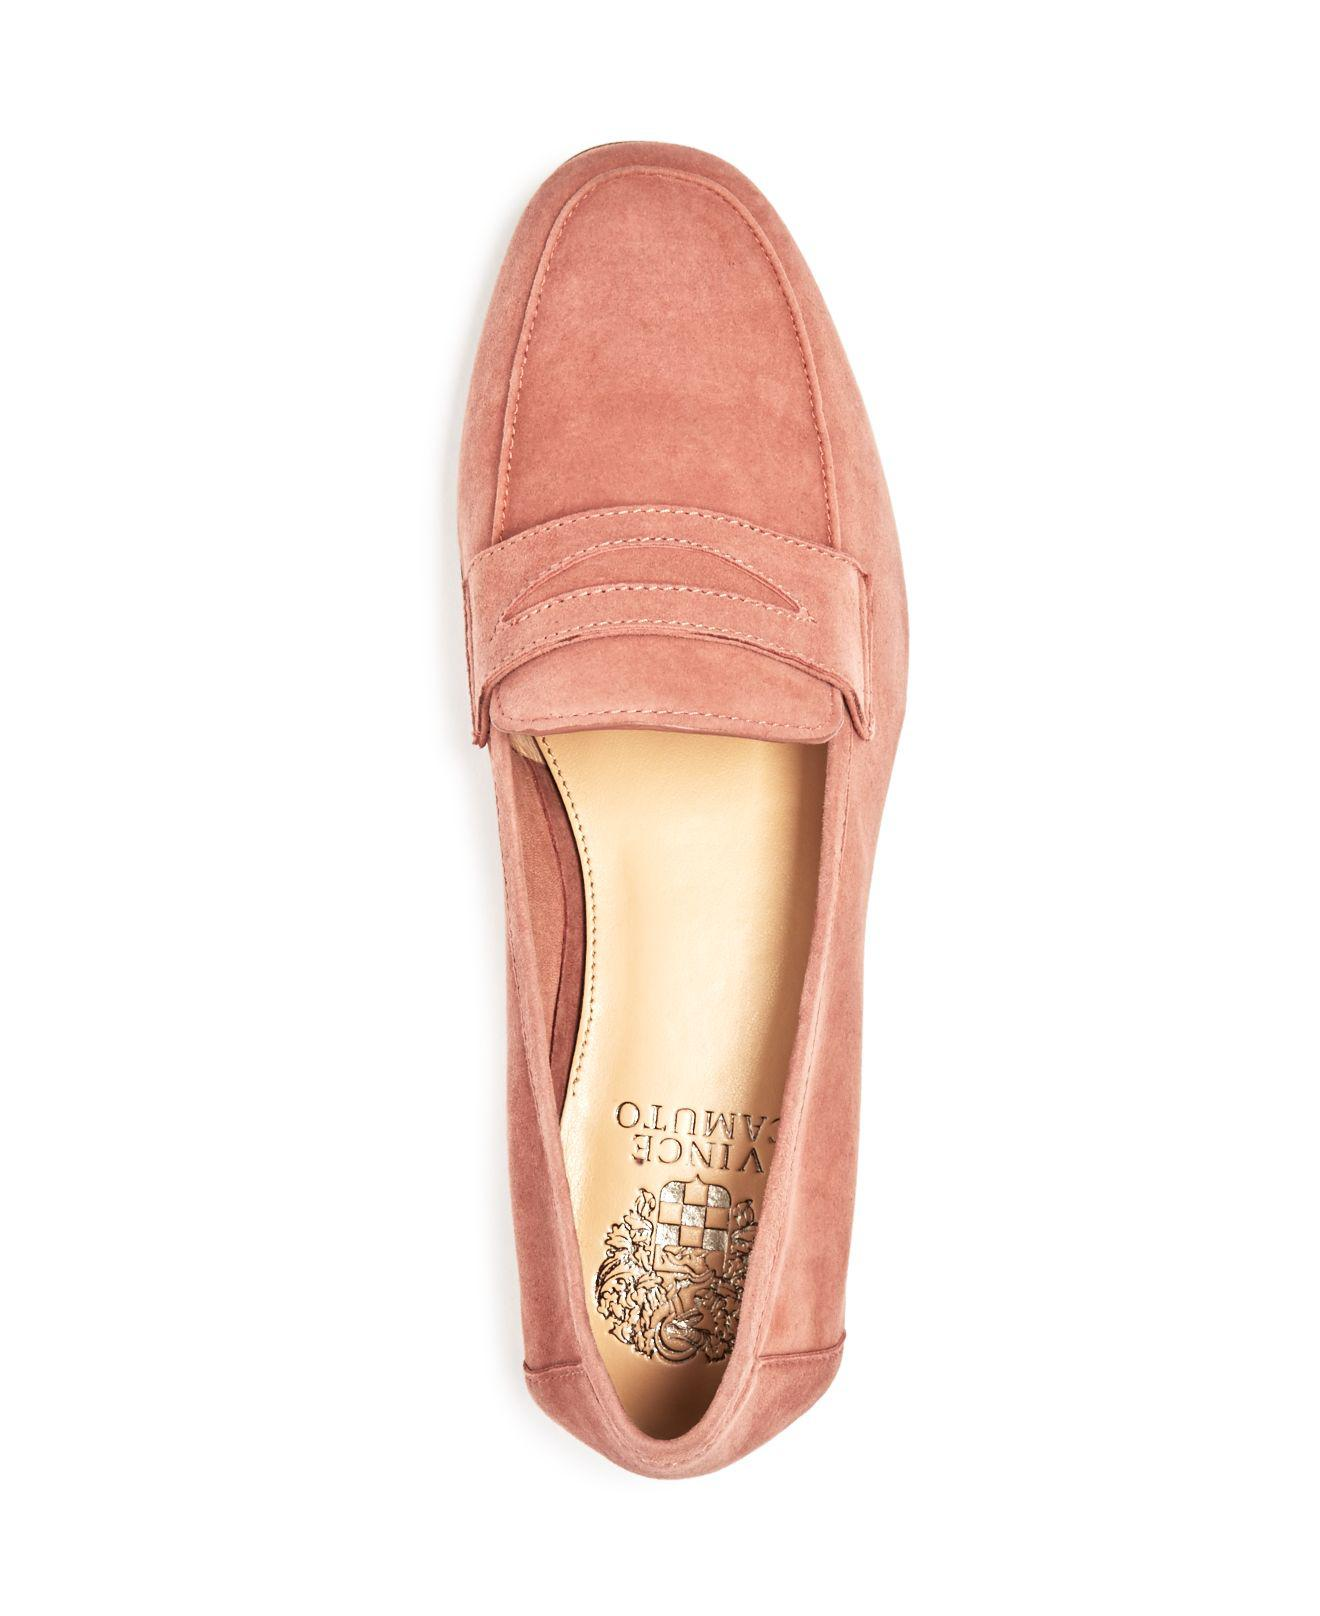 e8e9c6a84d4 Lyst - Vince Camuto Elroy Penny Loafers in Black